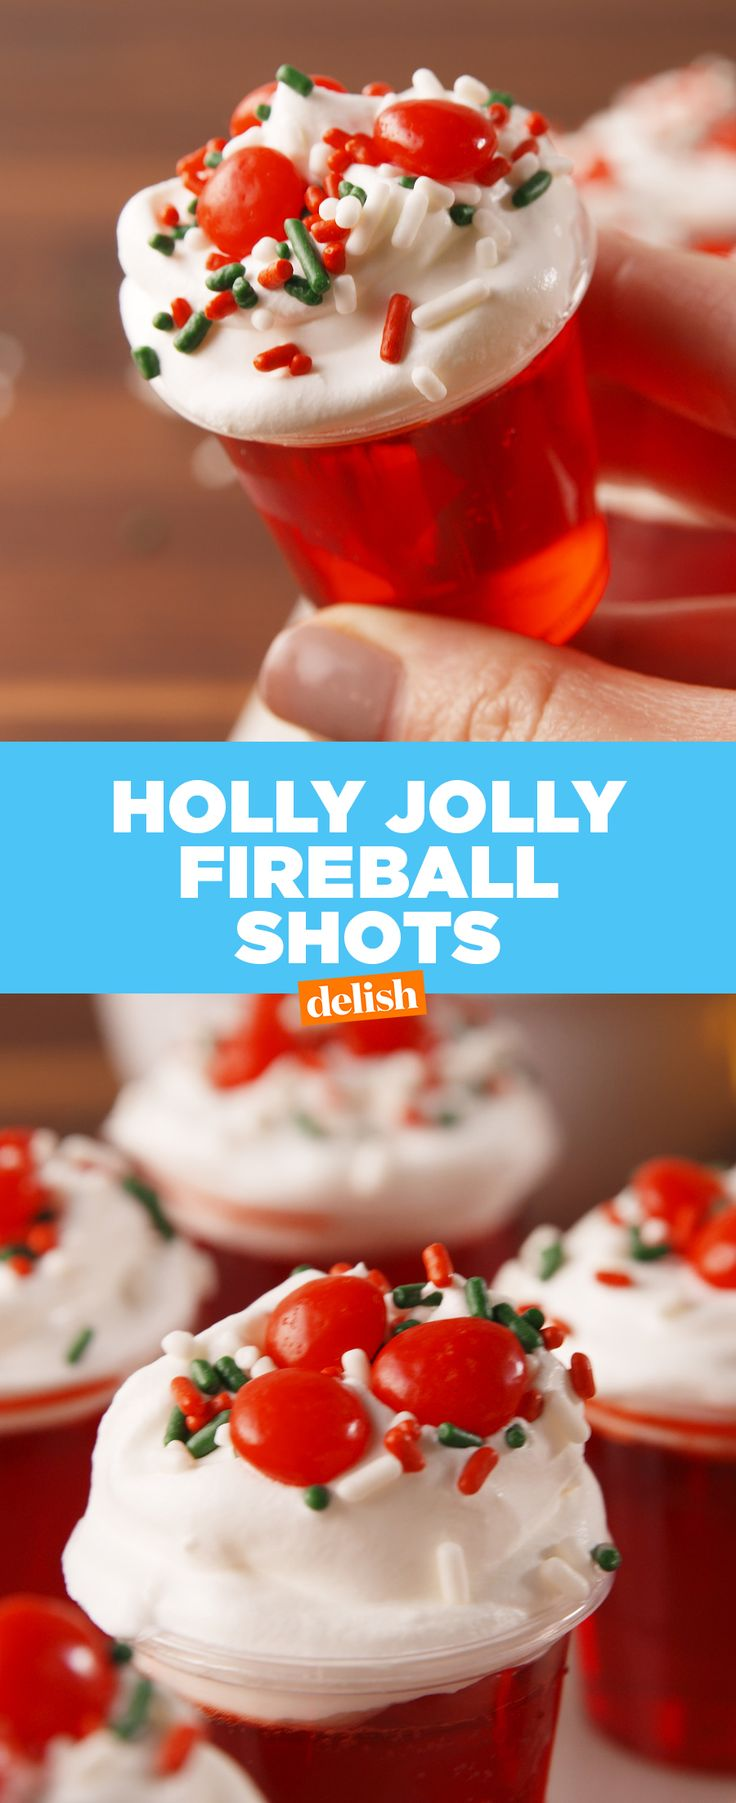 Holly Jolly Fireball Shots